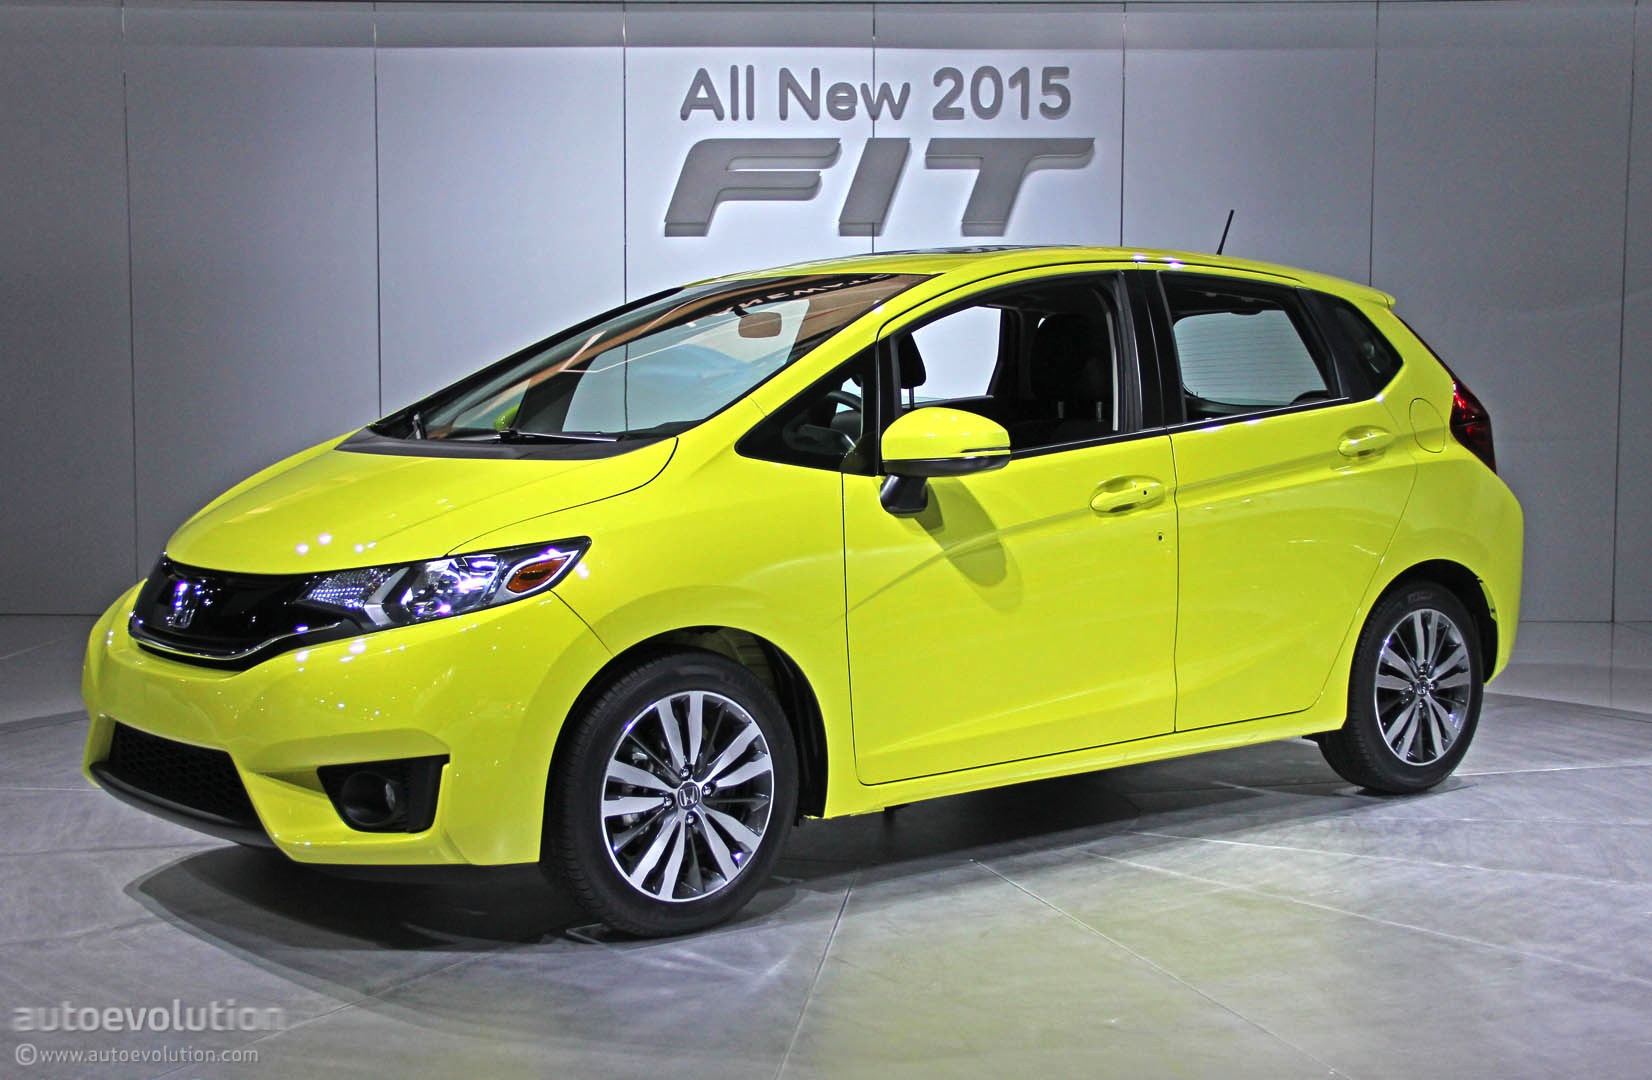 Kia Rio Hatchback >> 2015 Honda Fit Is a Cool New Urban Car for $15,525 ...